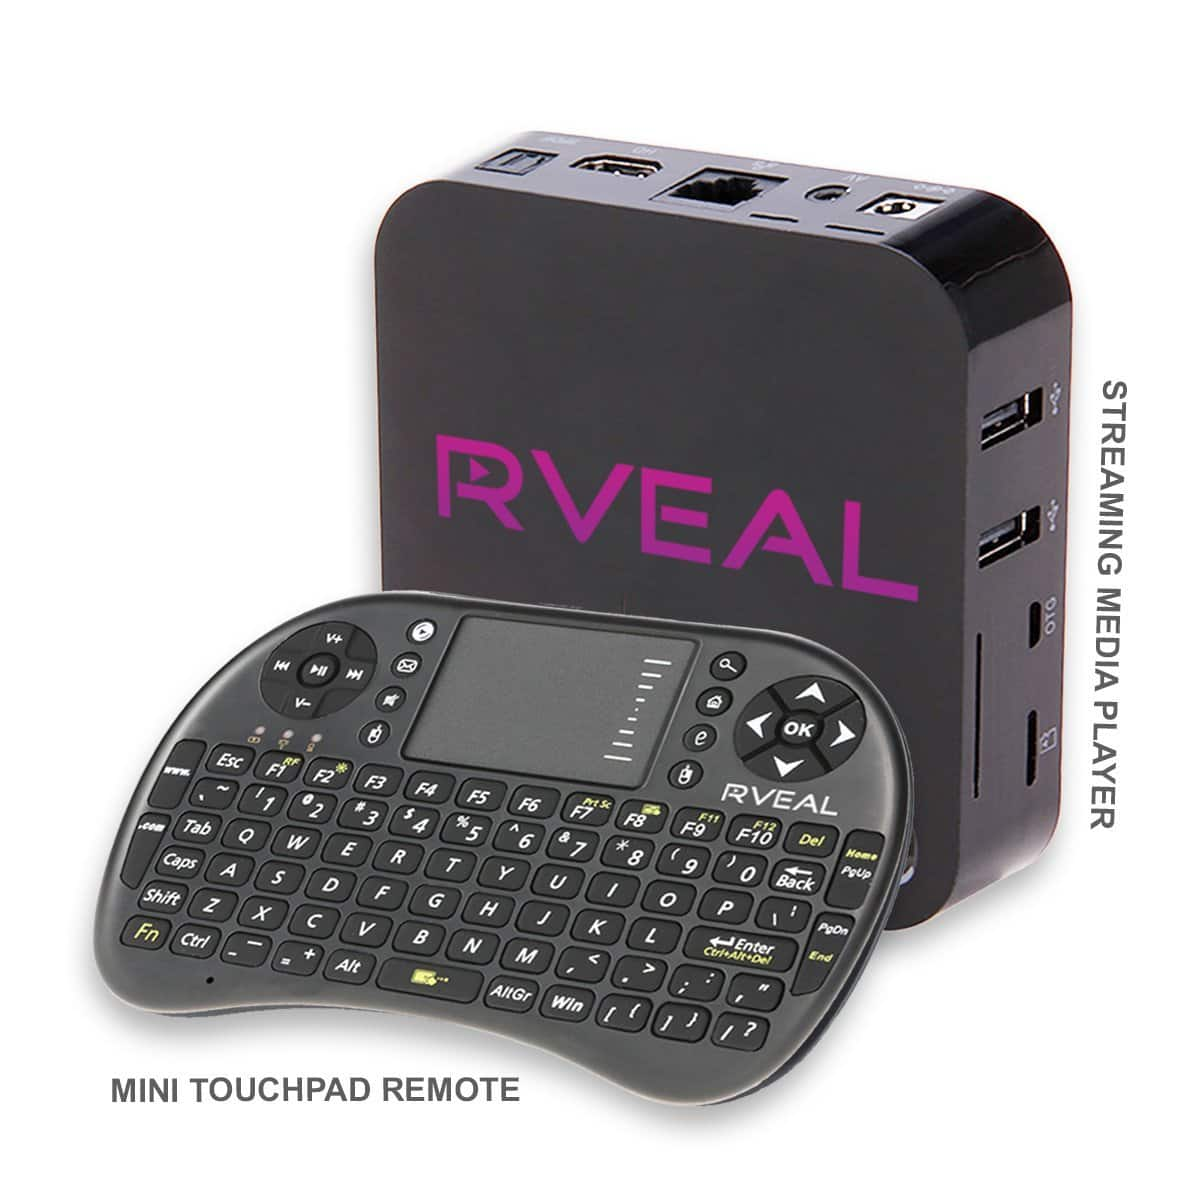 2017 Rveal Streaming Media Player & Mini Touchpad Remote (Android TV Box) $239 @ Walmart